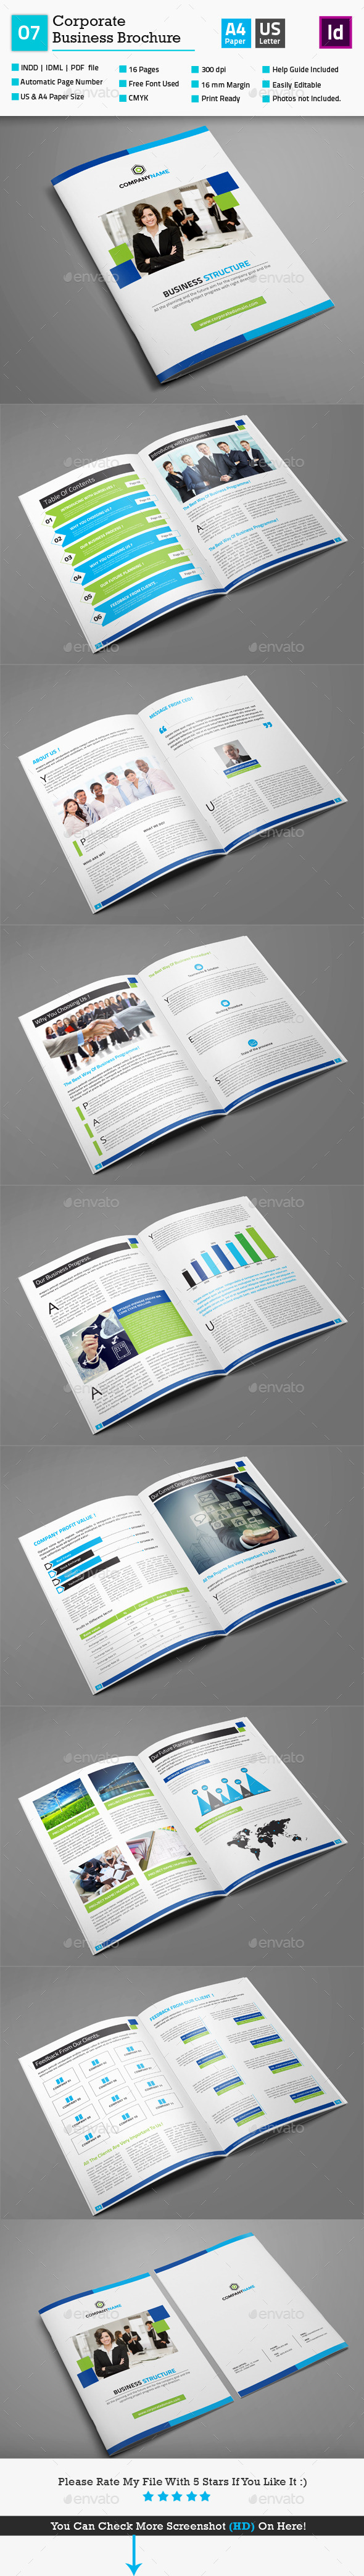 Corporate Business Brochure 07